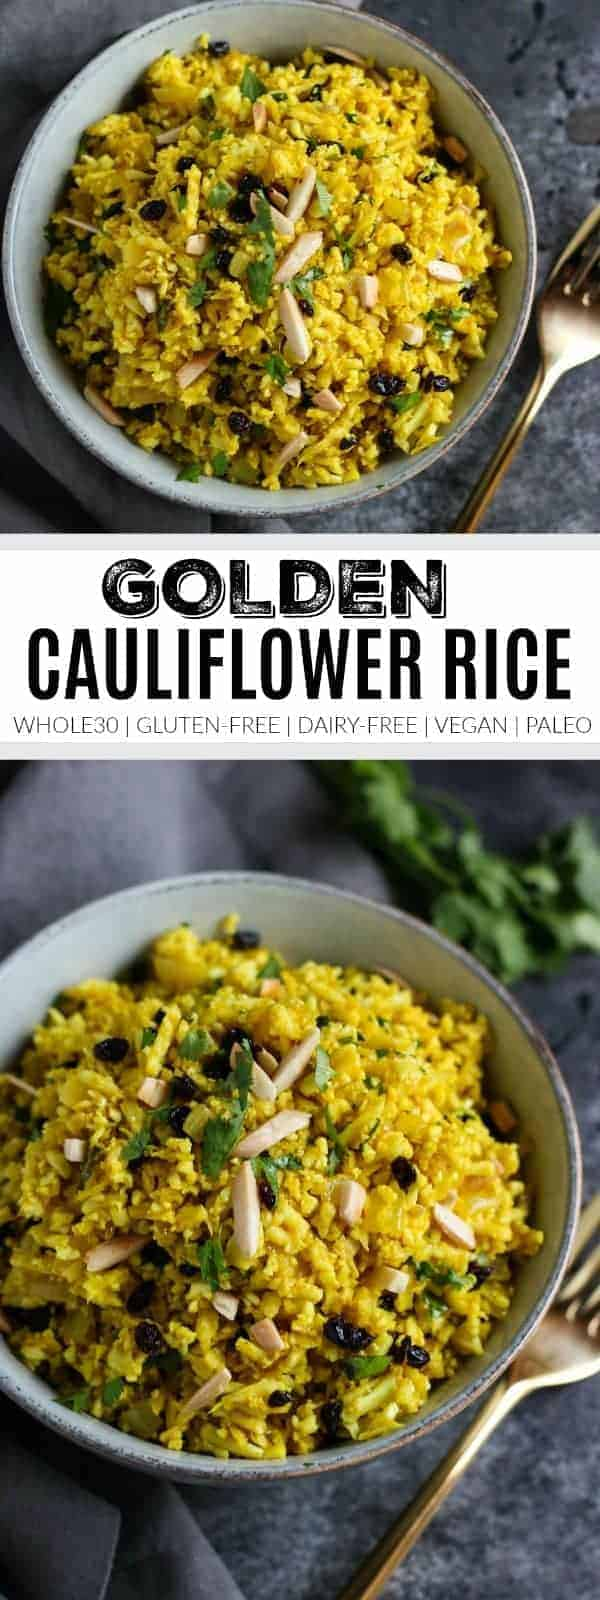 Golden Cauliflower Rice   how to cook cauliflower rice   cauliflower rice recipes   whole30 side dishes   gluten-free side dishes   dairy-free side dishes   vegan side dishes   paleo side dishes   gluten-free cauliflower rice   whole30 recipe ideas    The Real Food Dietitians #whole30recipes